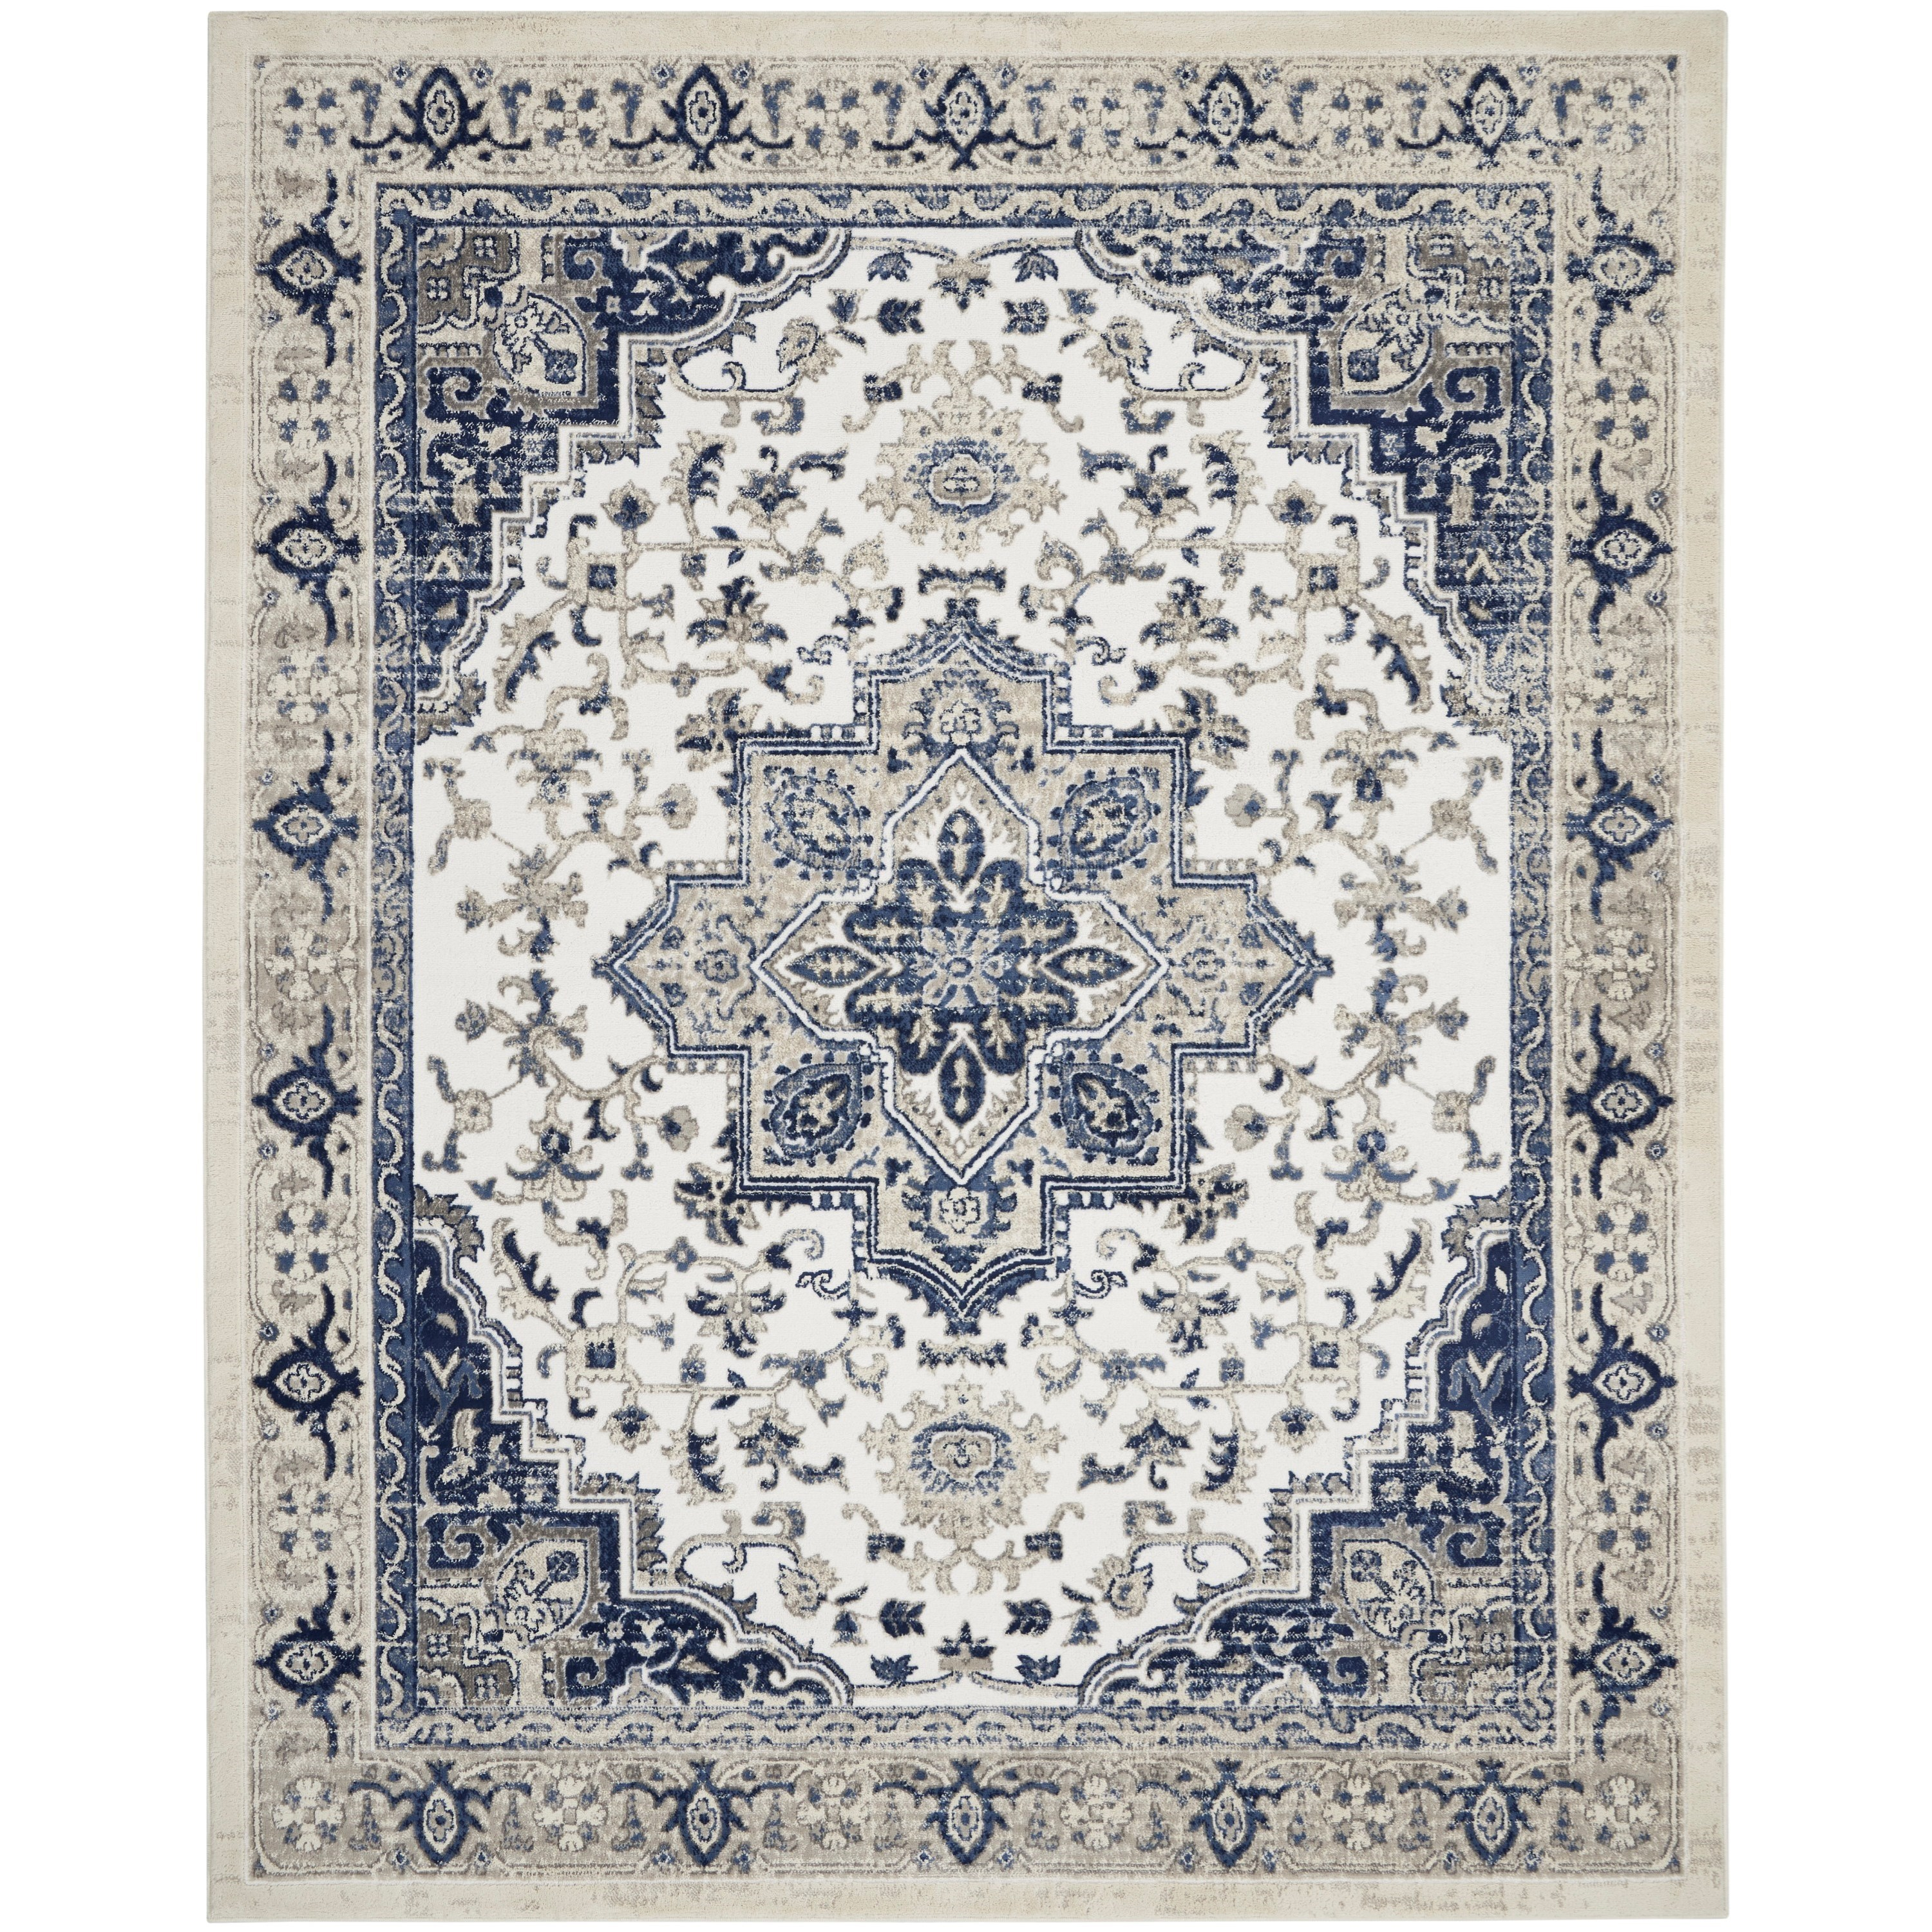 Cyrus 2020 8' x 10' Rug by Nourison at Home Collections Furniture